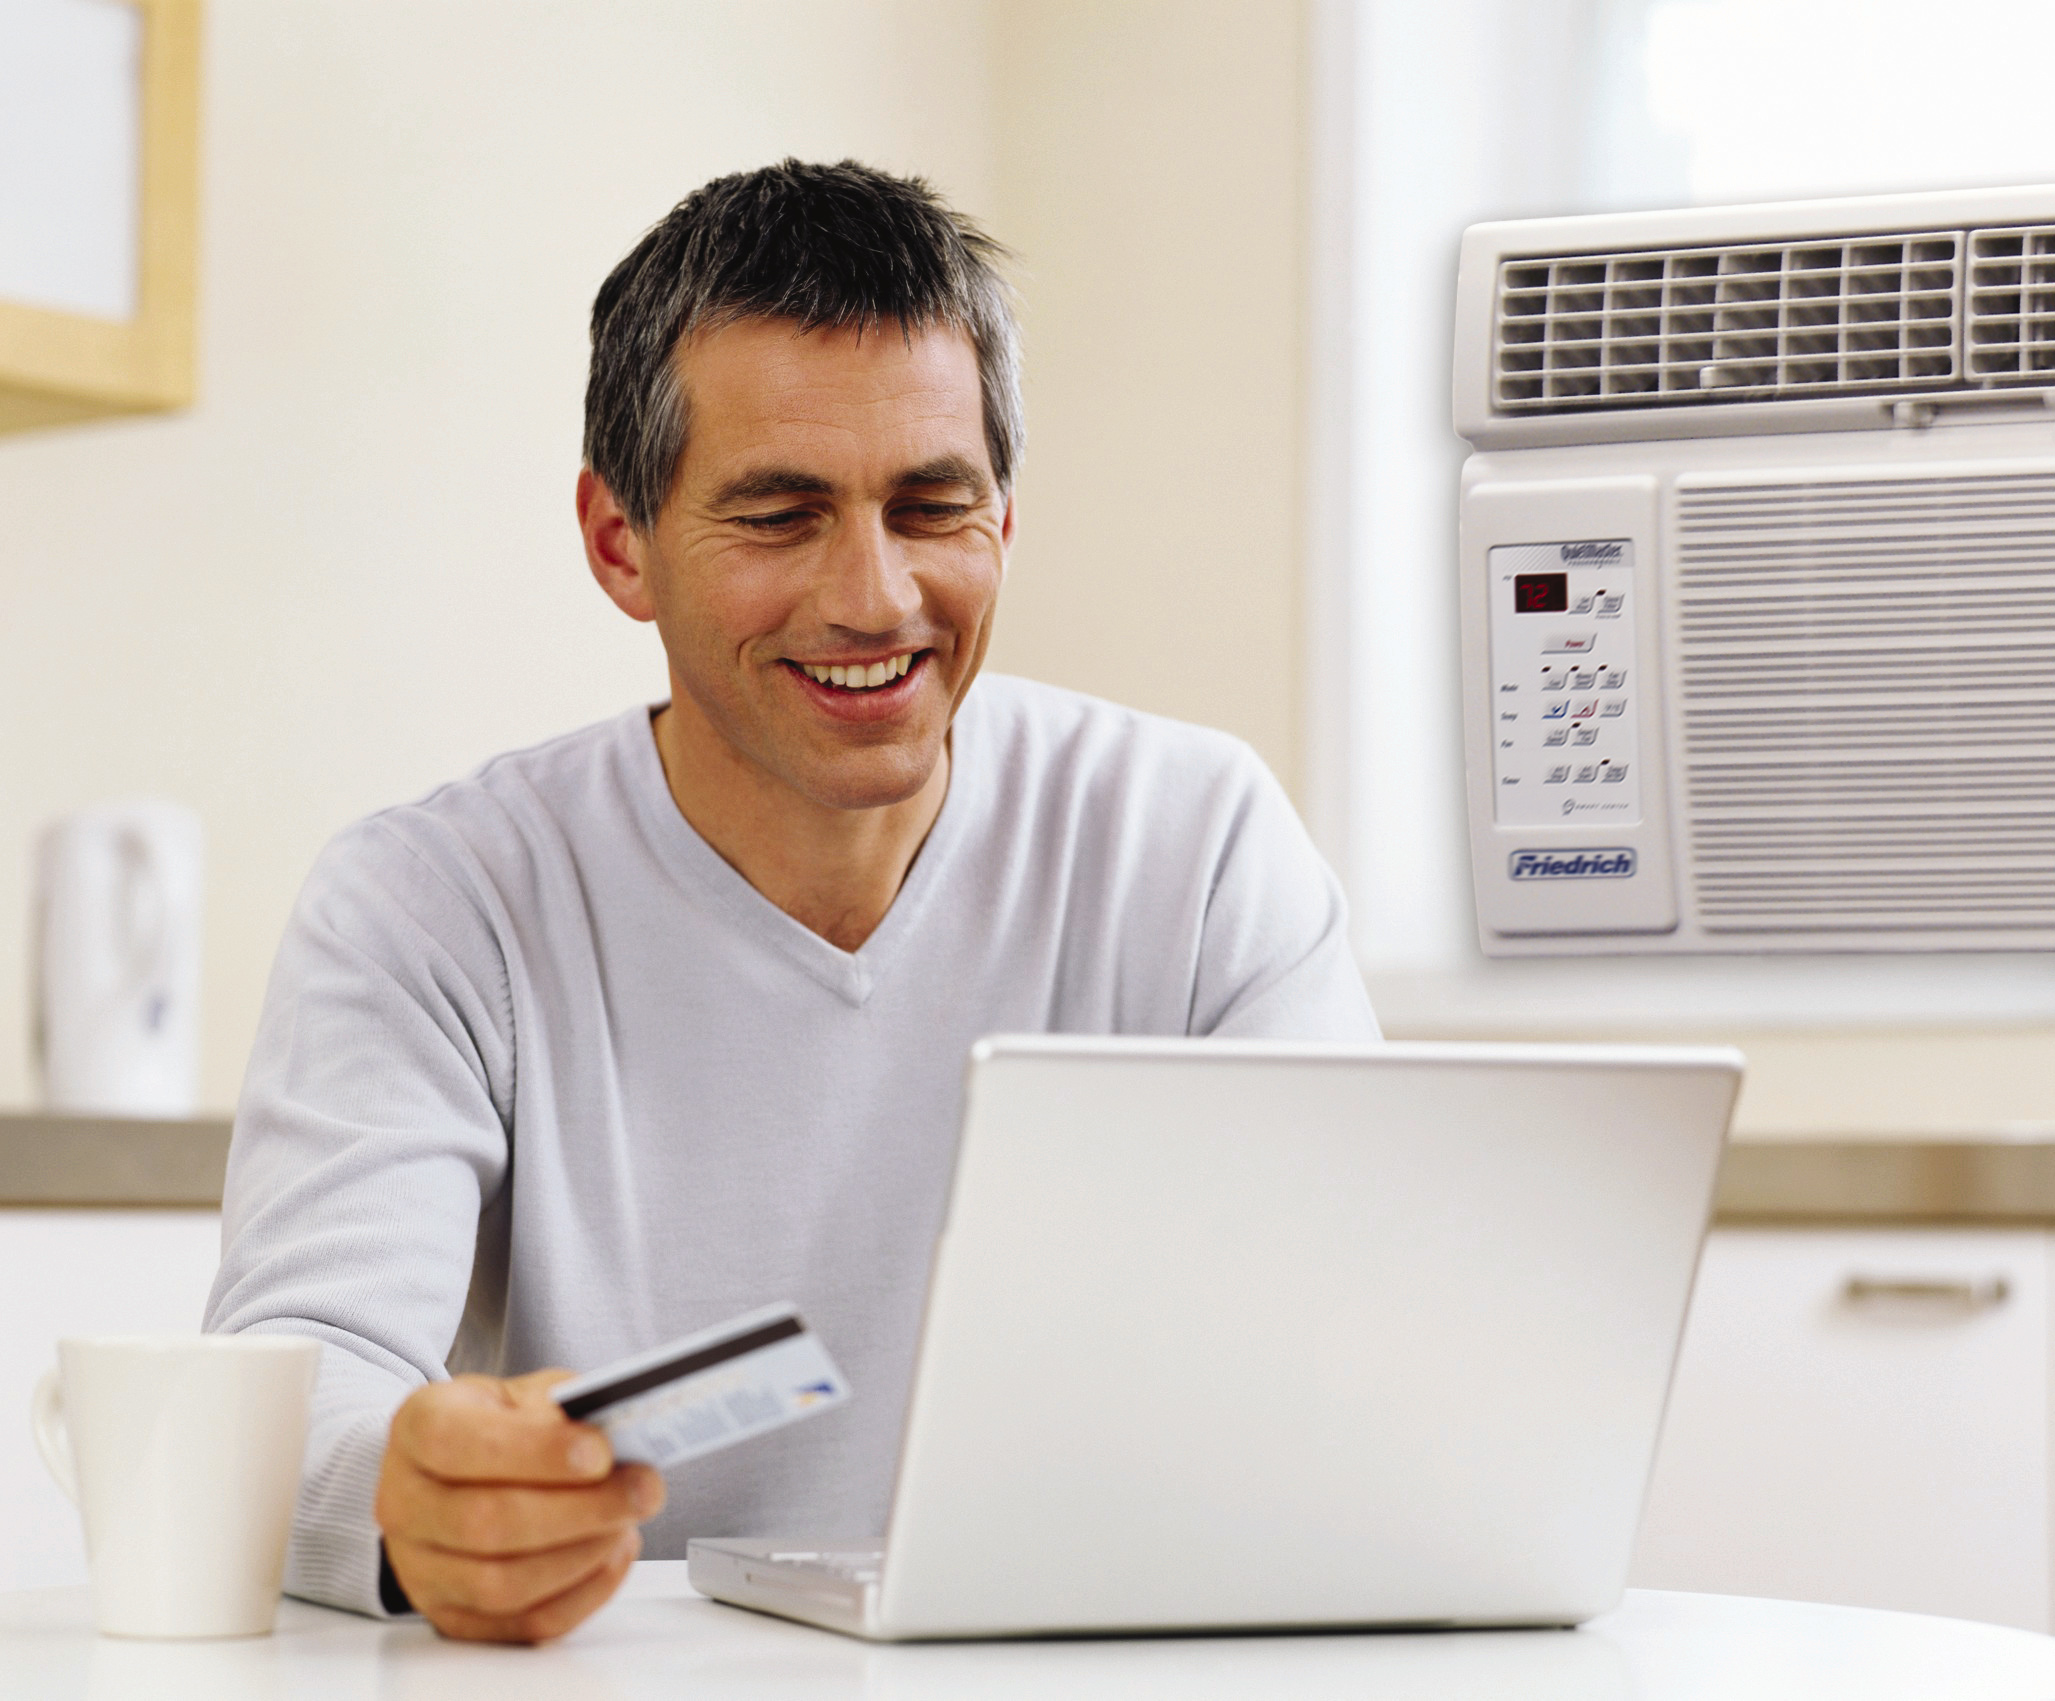 Man Paying Bill Online with Credit Card